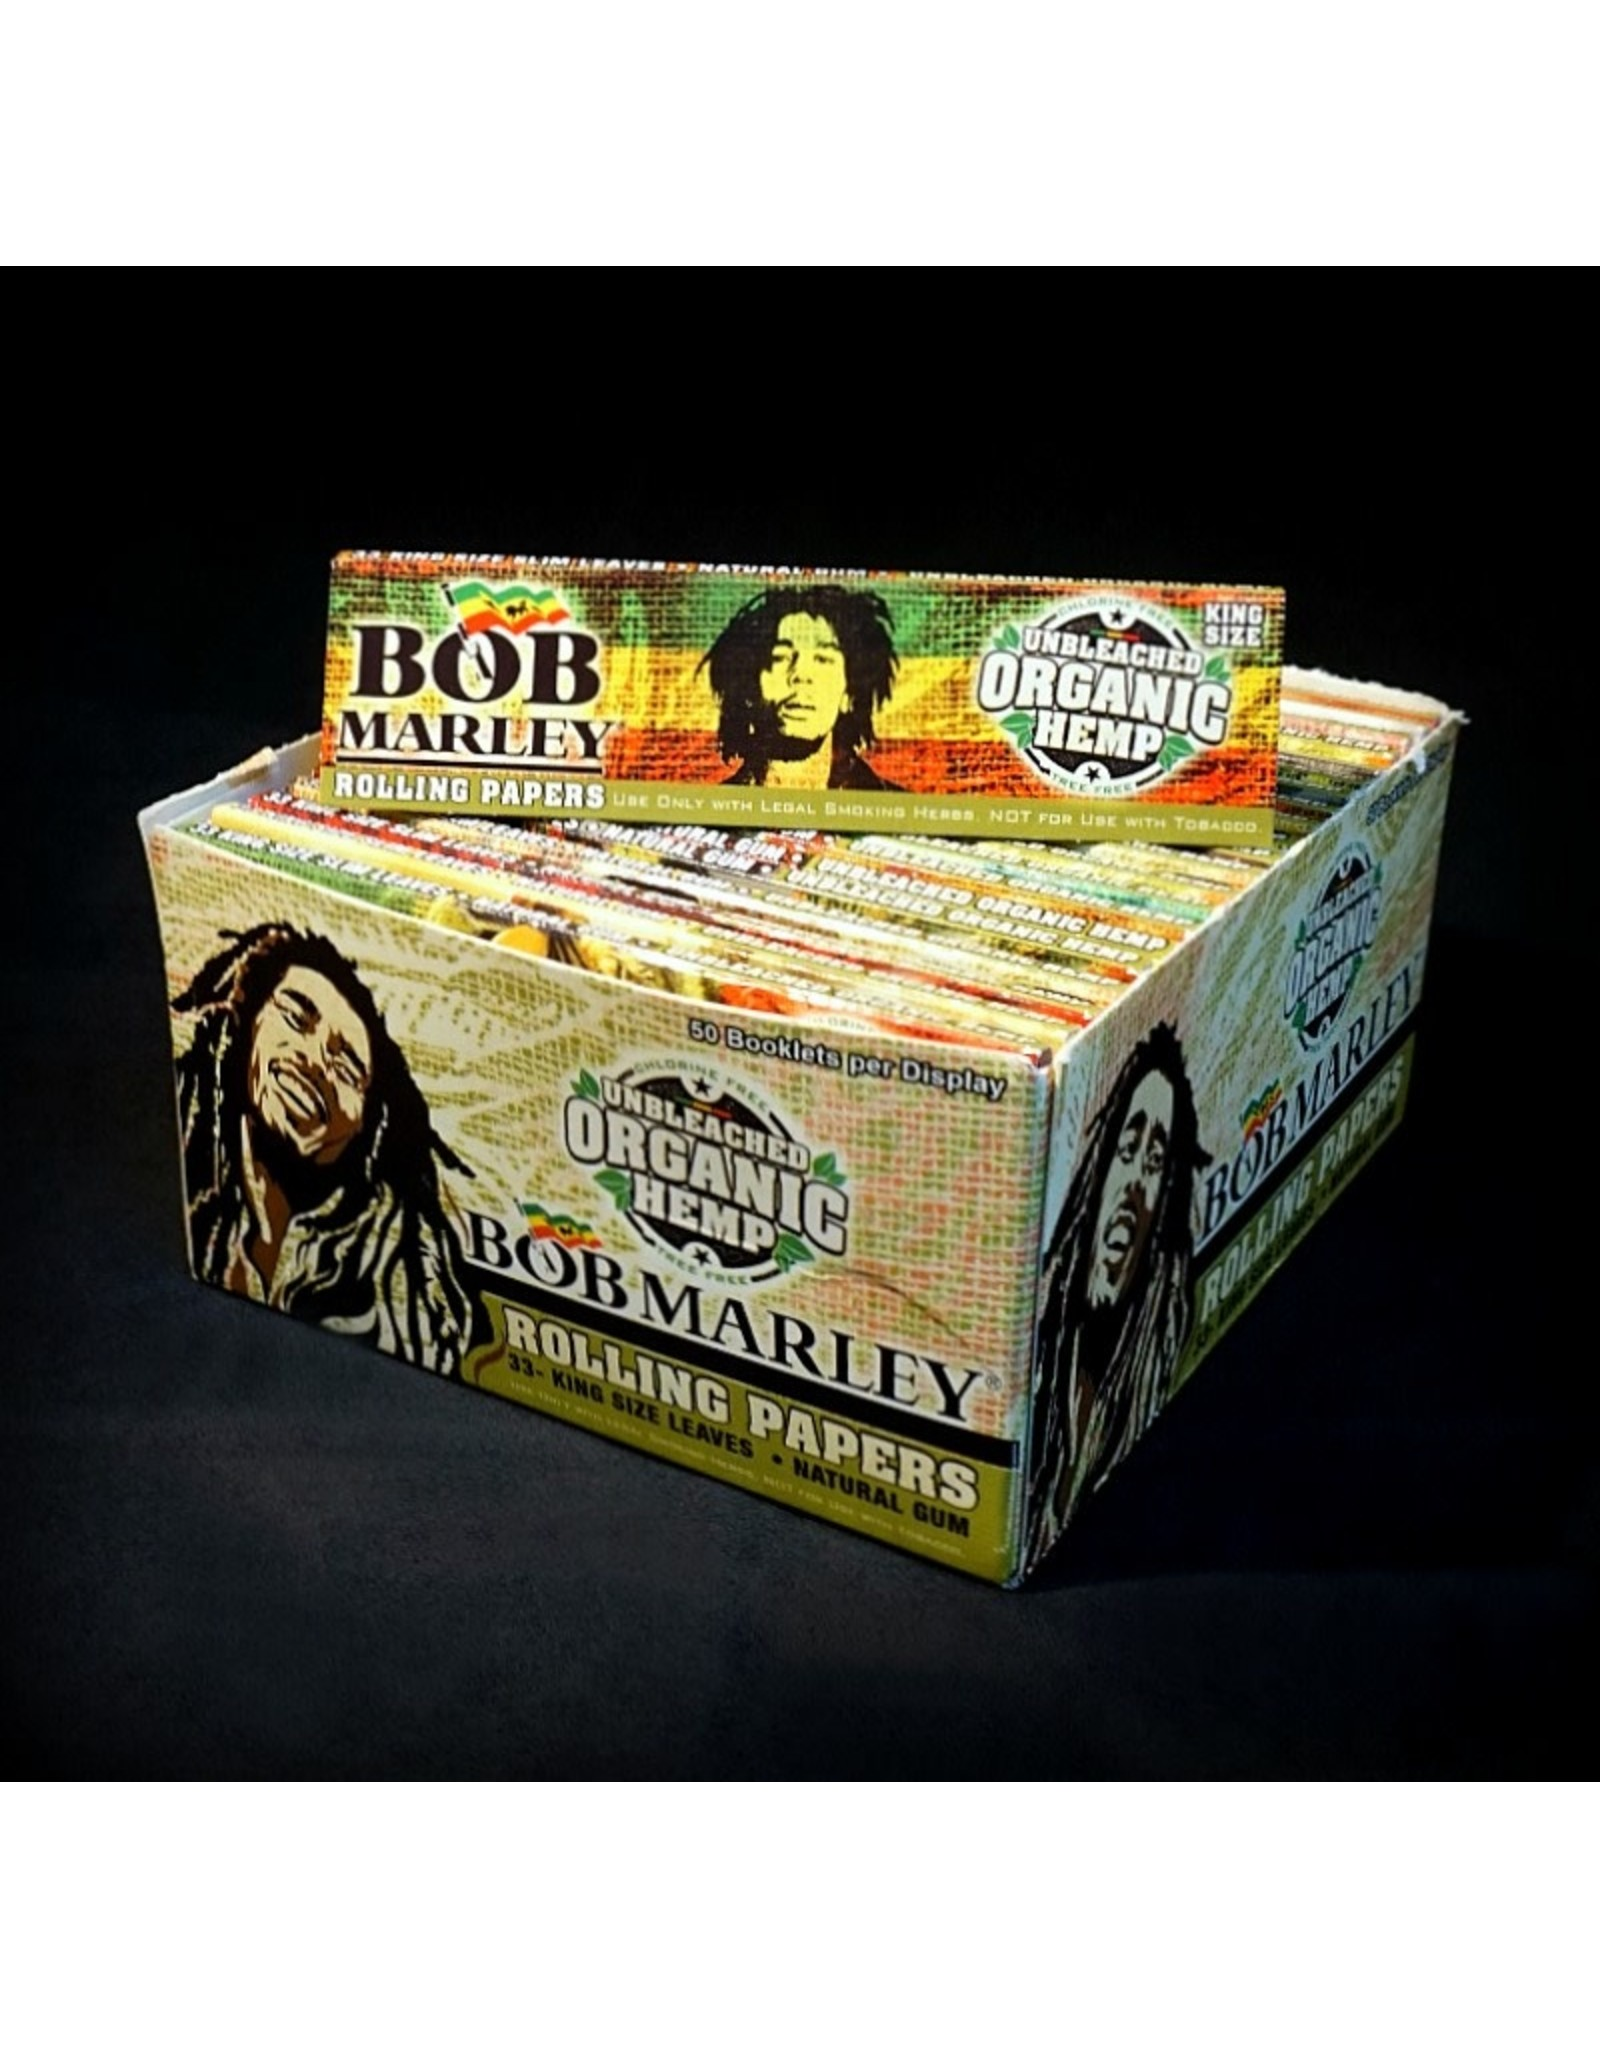 Bob Marley Papers Bob Marley Papers KS Organic